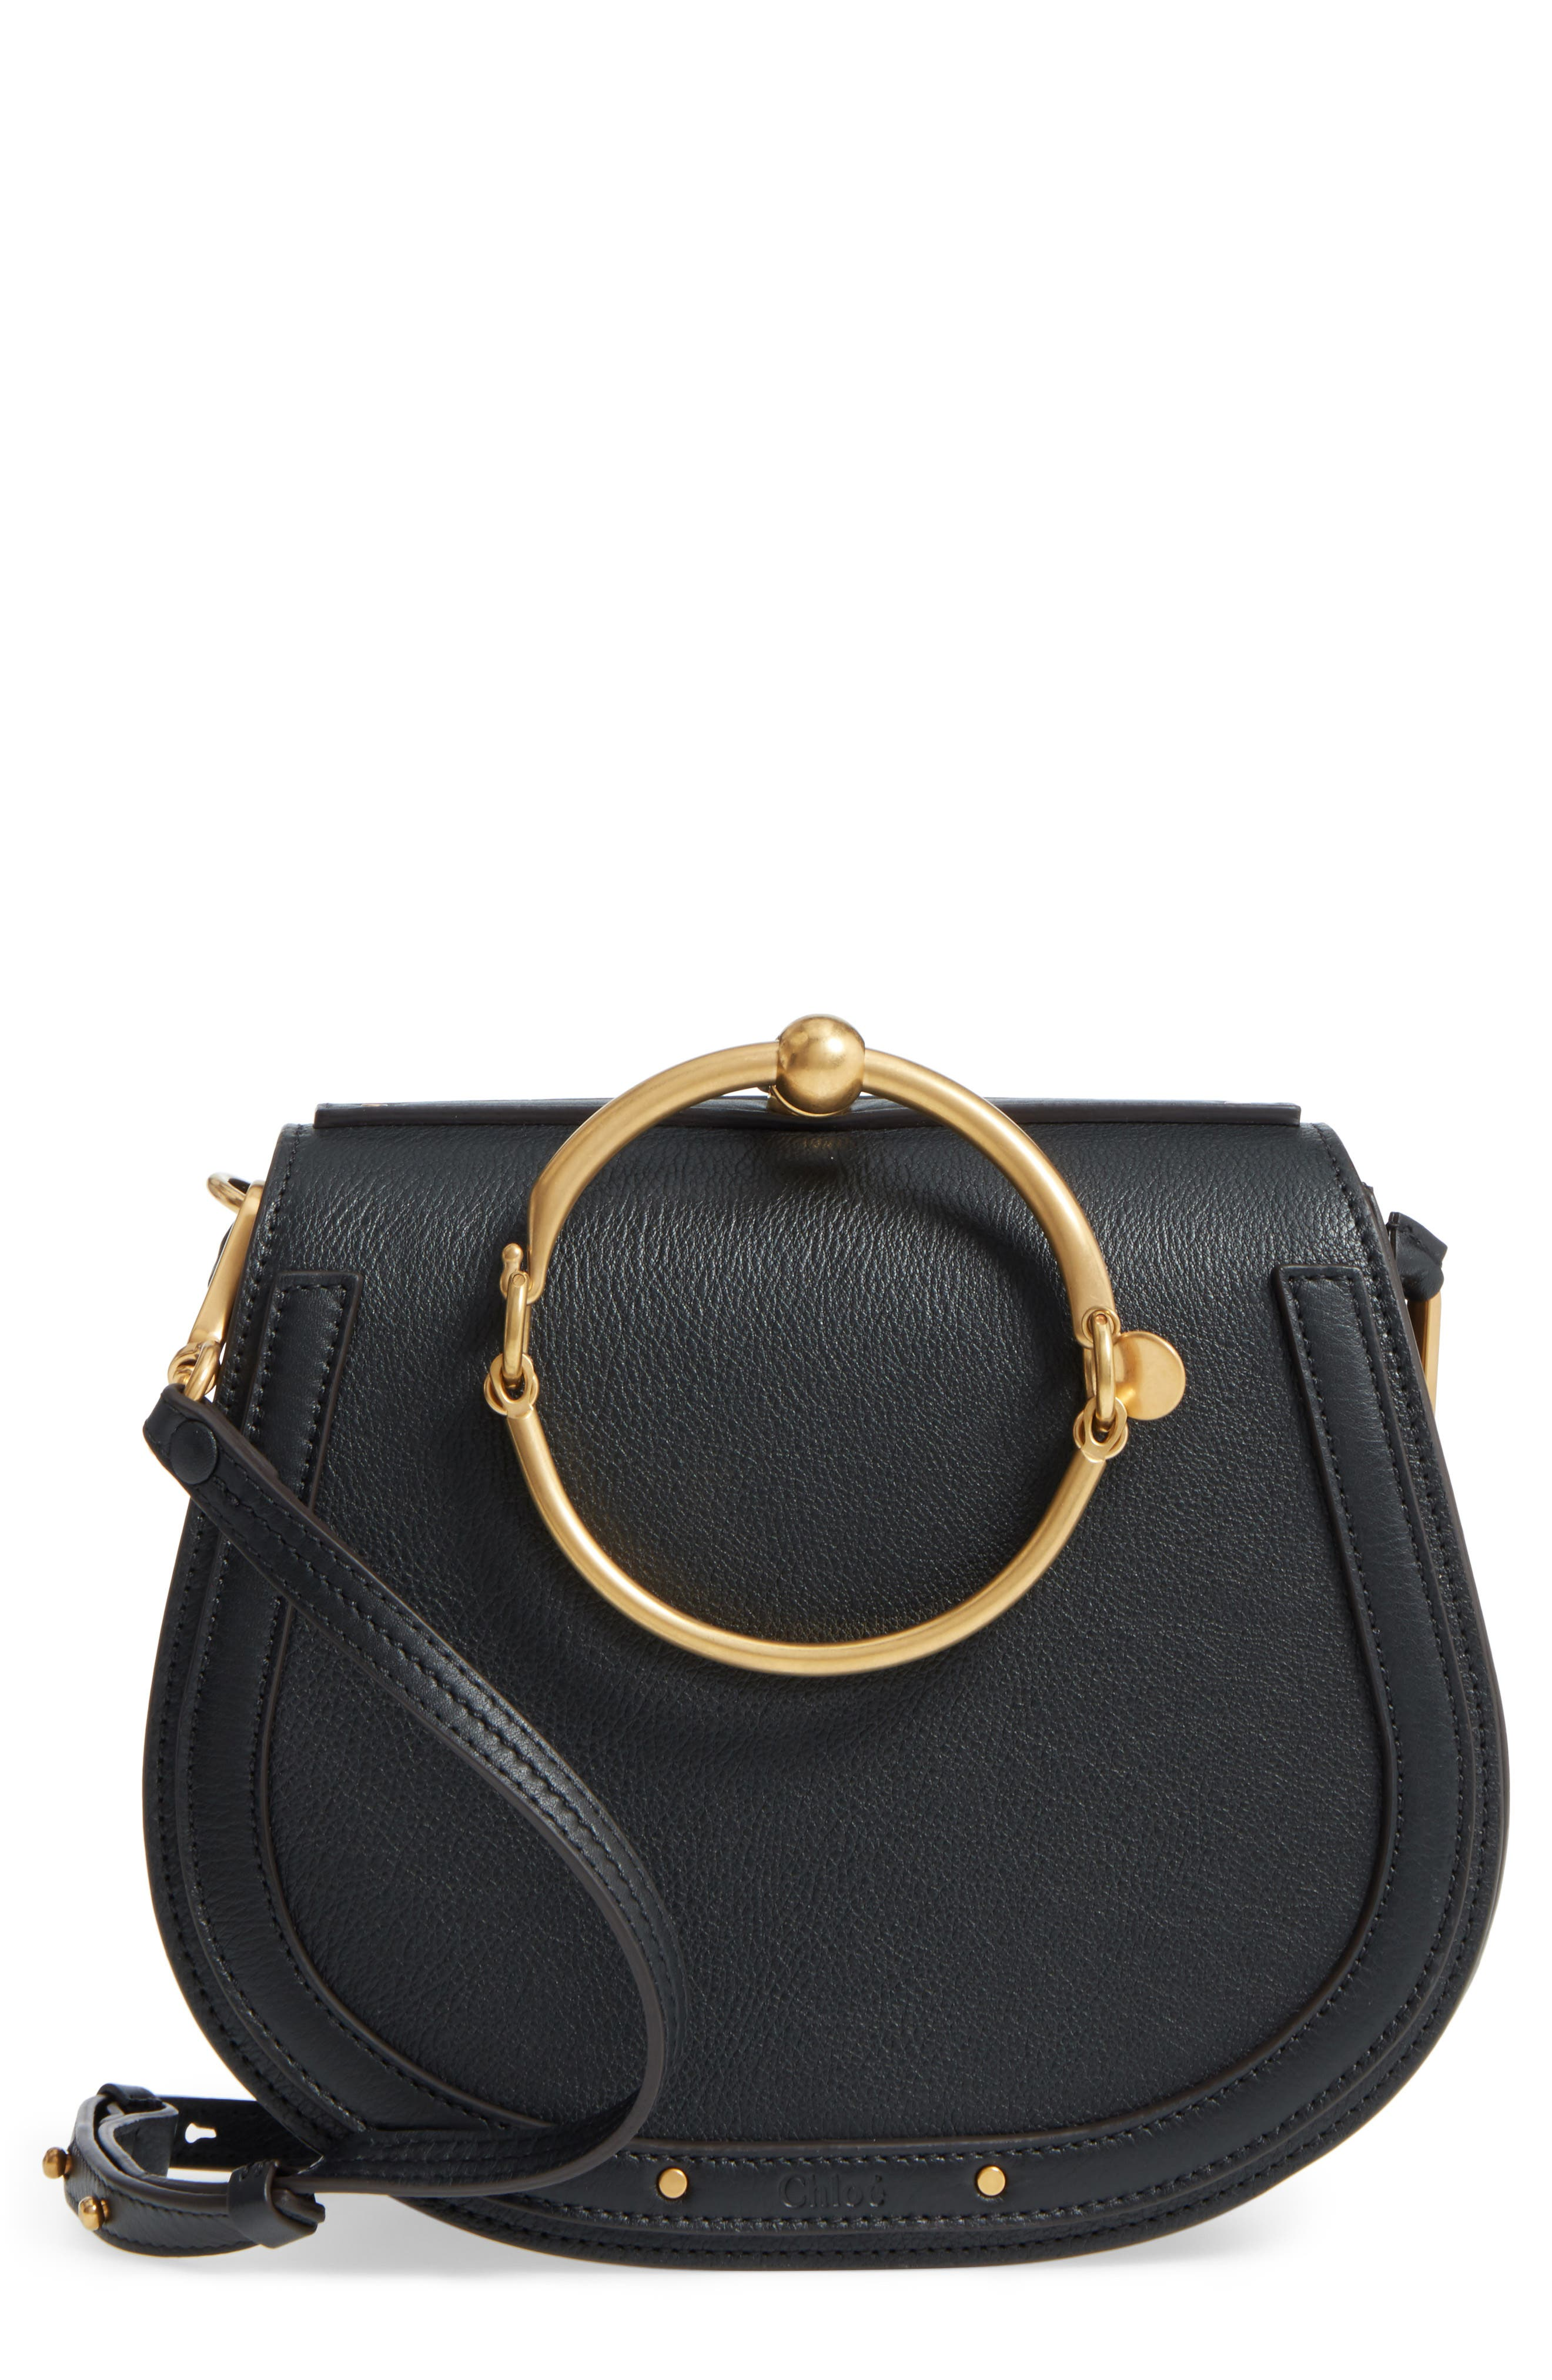 Medium Nile Leather Bracelet Saddle Bag,                             Main thumbnail 1, color,                             001NR001 BLACK